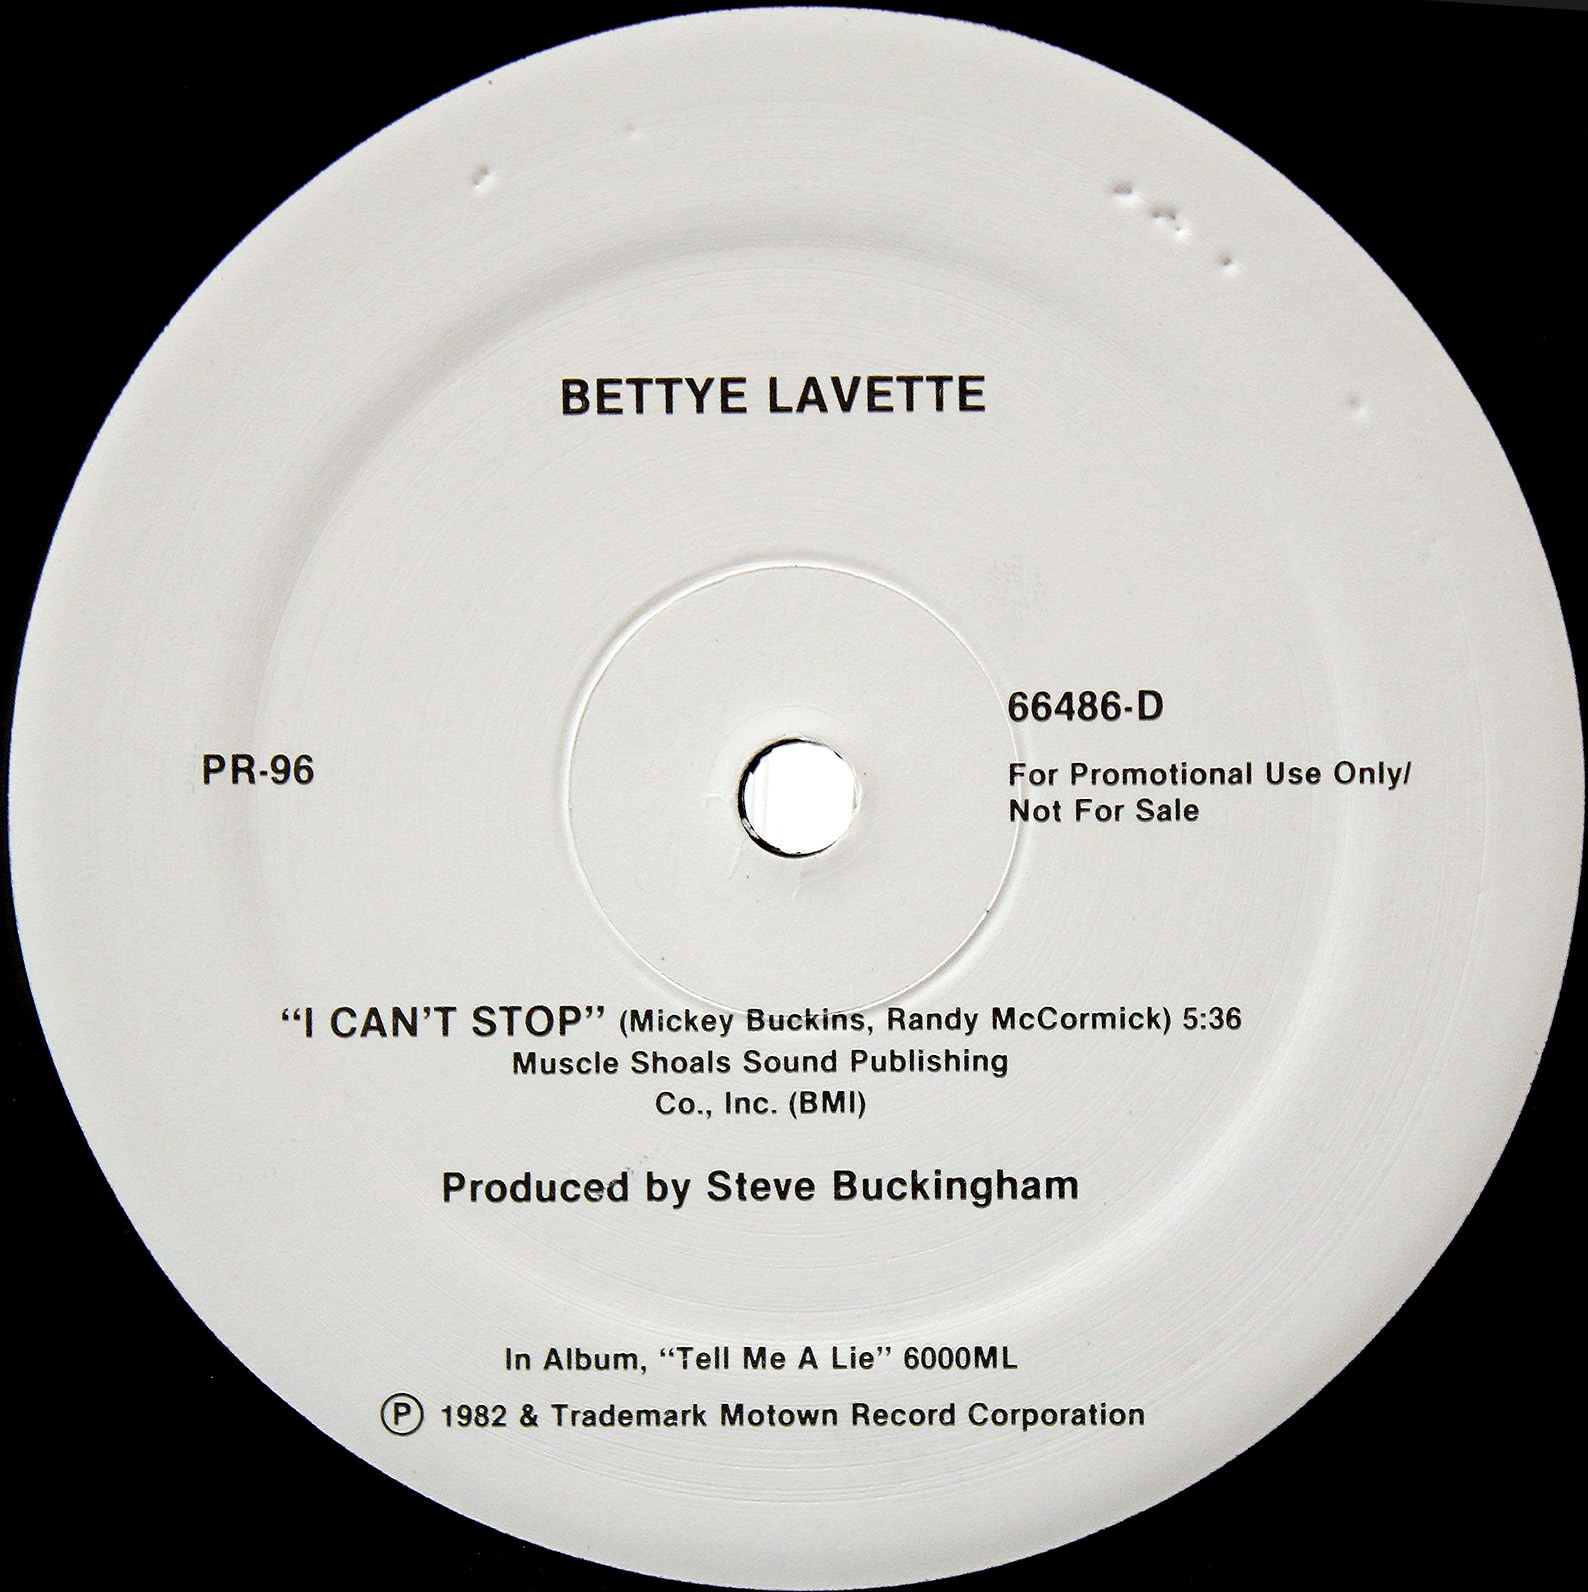 Bettye Lavette - I Cant Stop 01